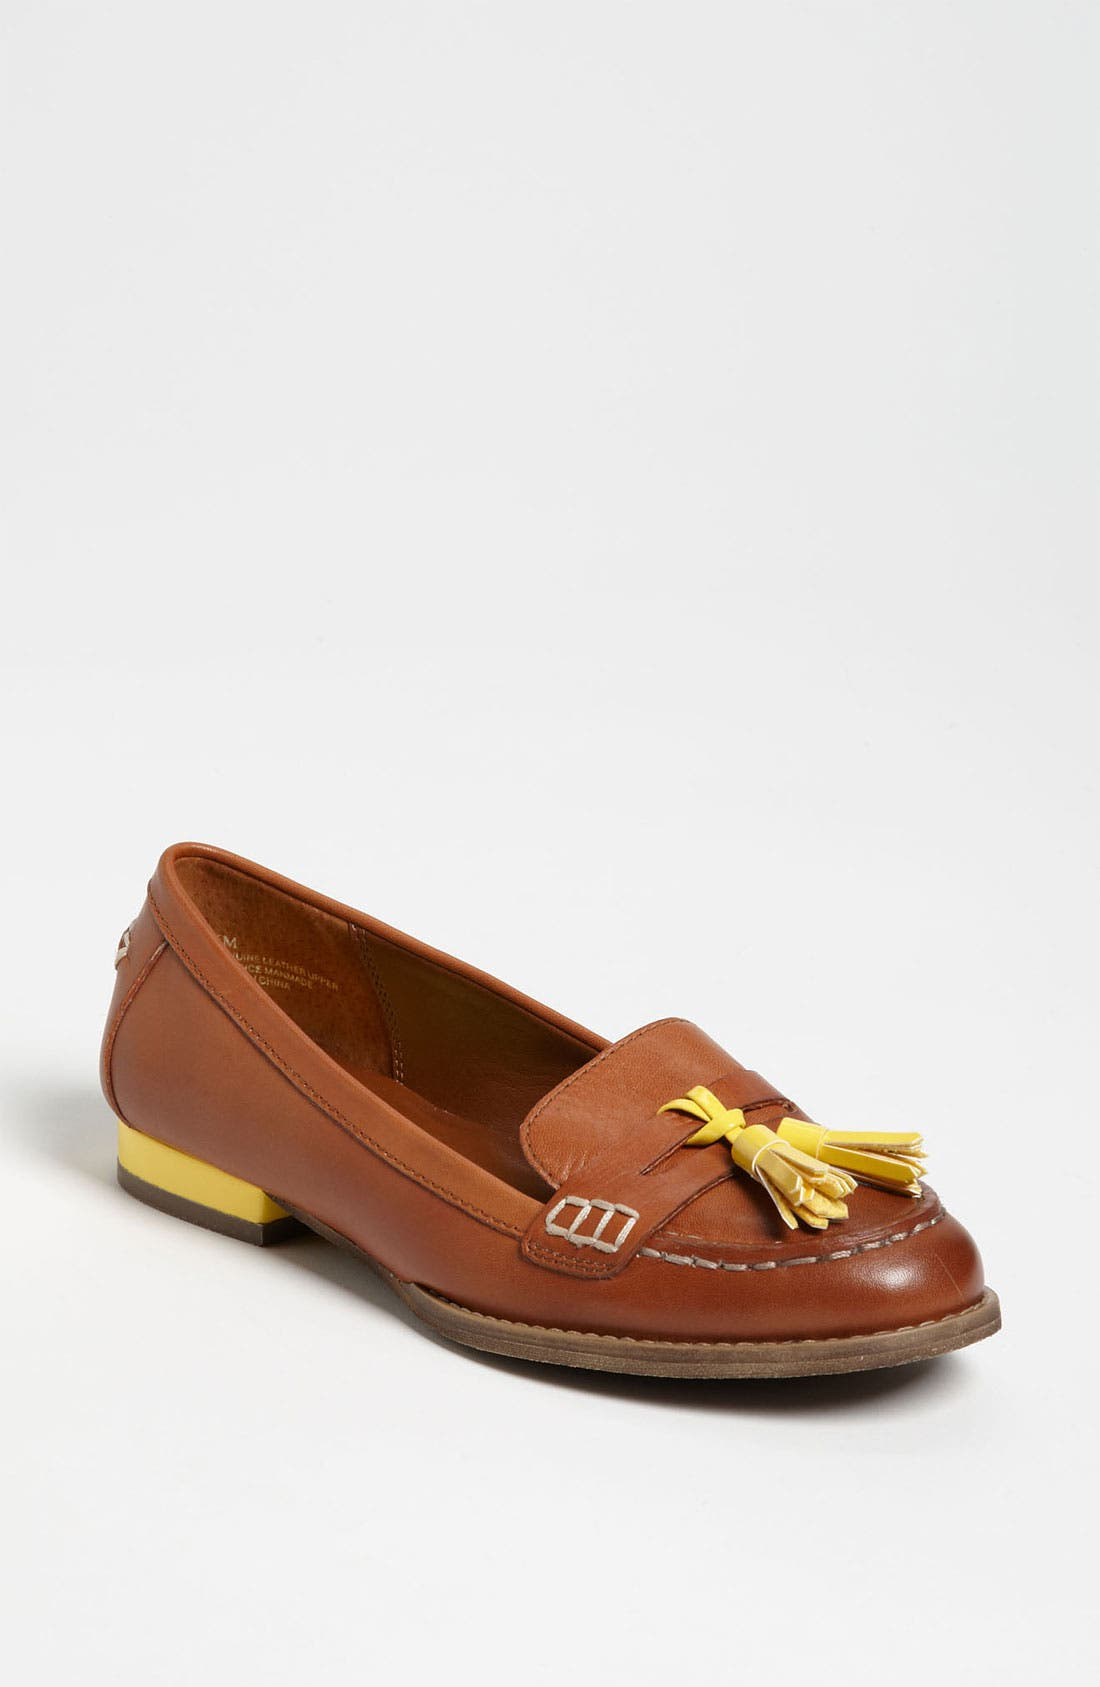 Alternate Image 1 Selected - BP. 'Chandler' Loafer